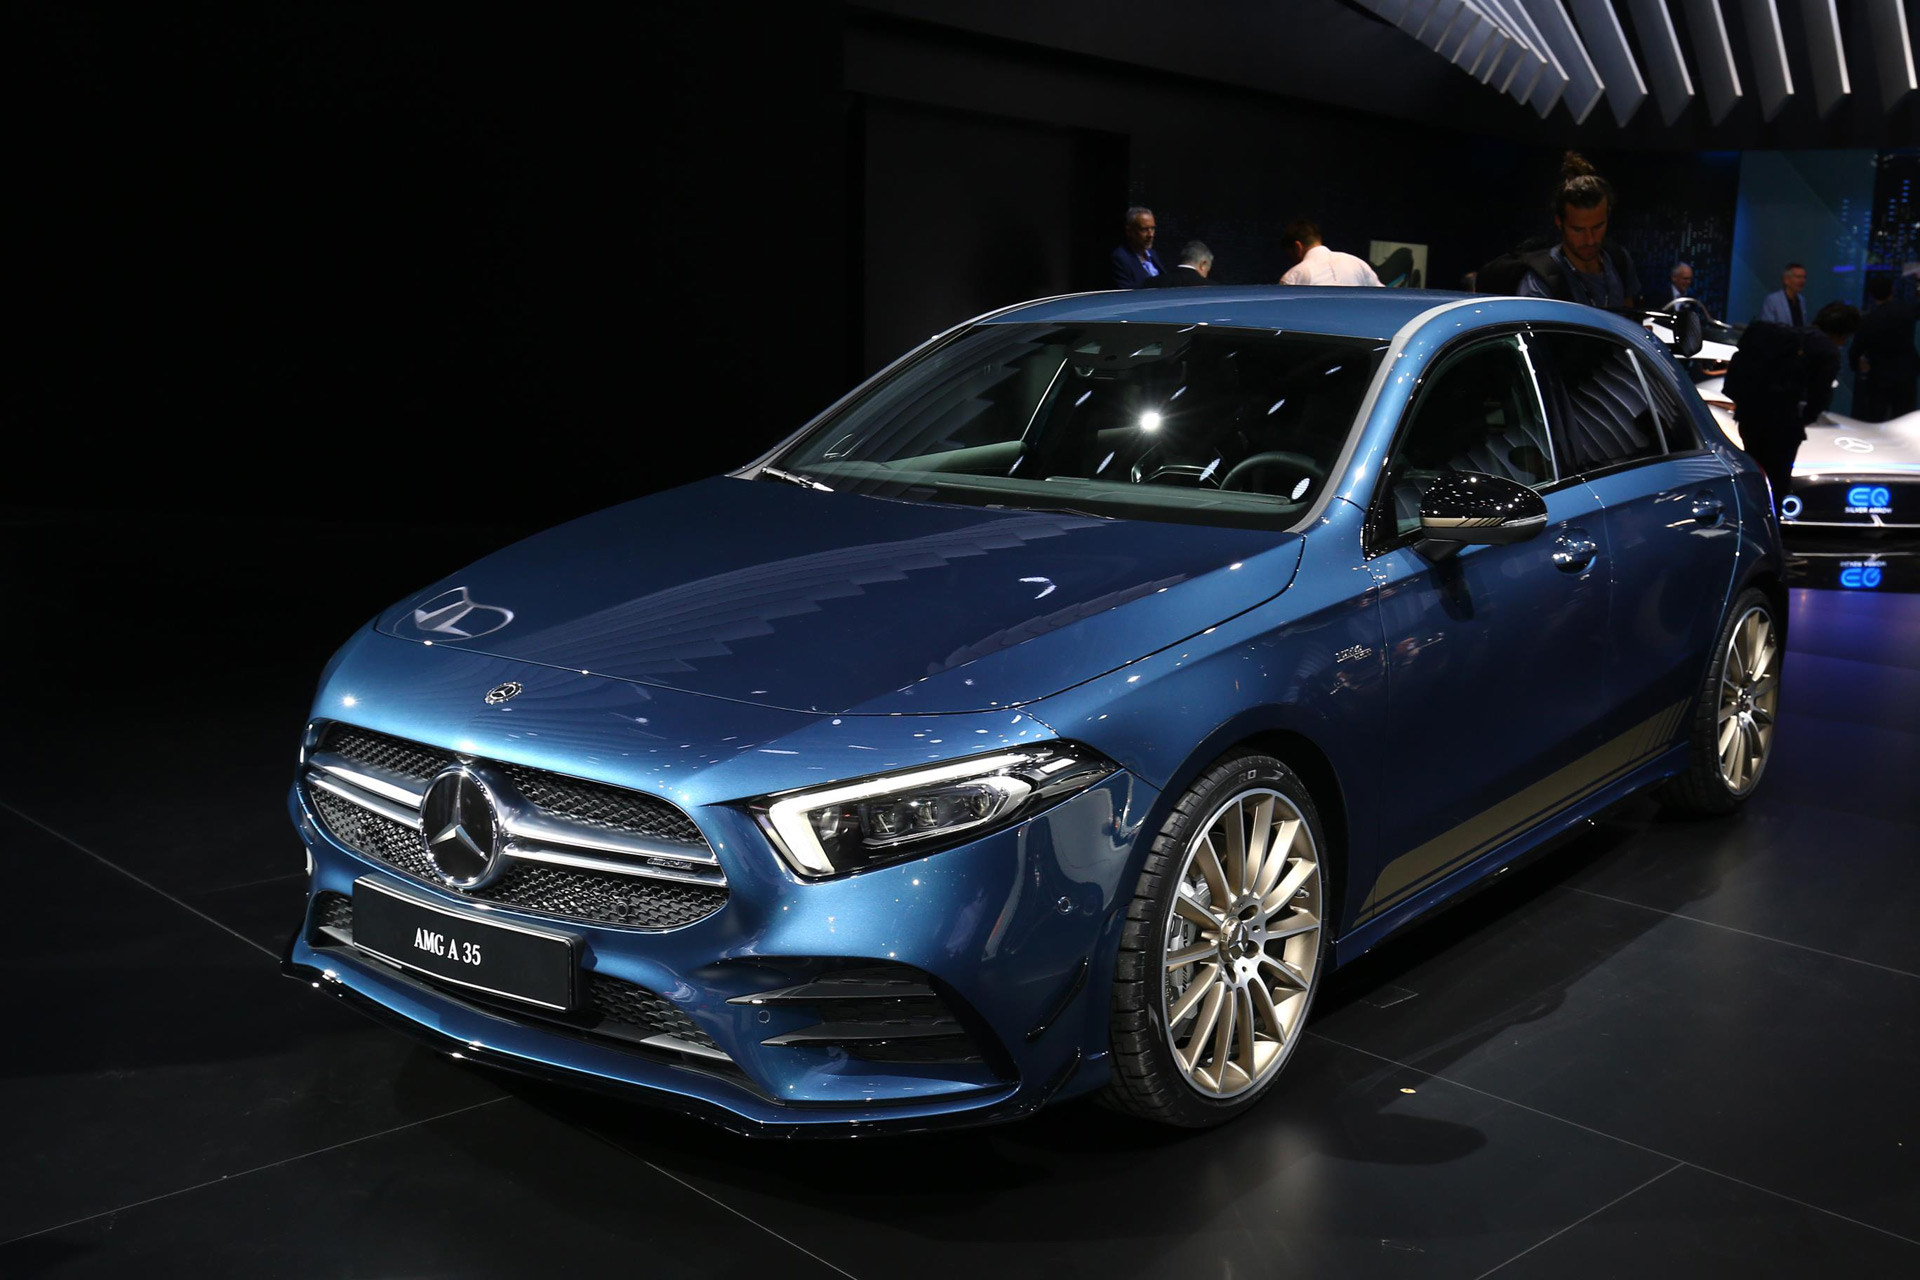 2019 Mercedes Amg A35 Hot Hatch Revealed With 302 Horsepower